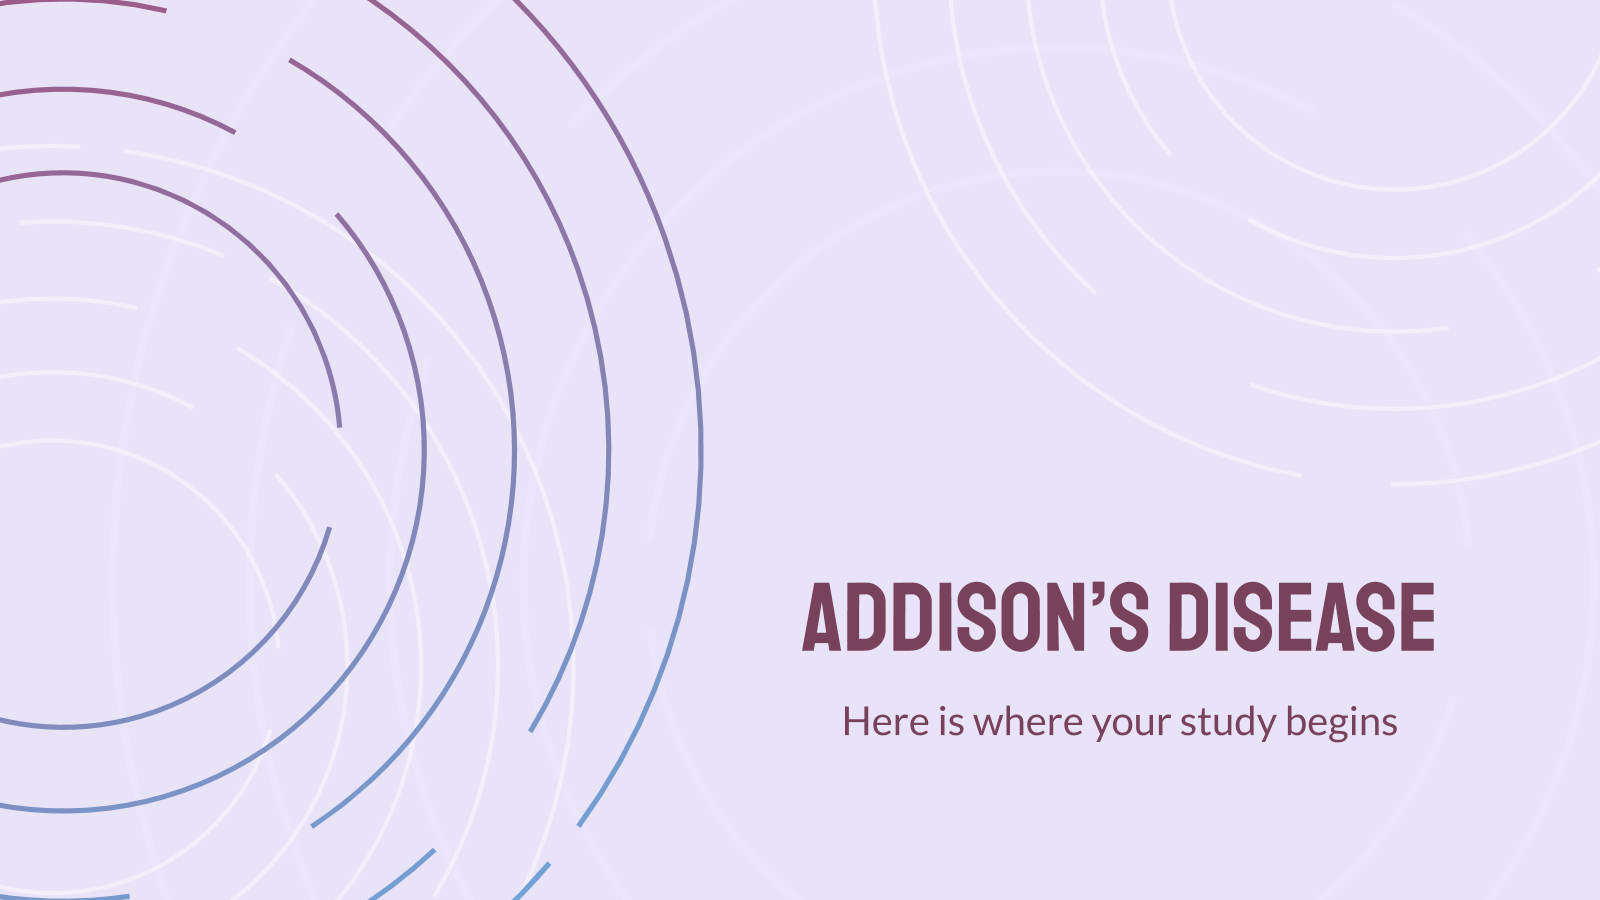 Addison's Disease presentation template